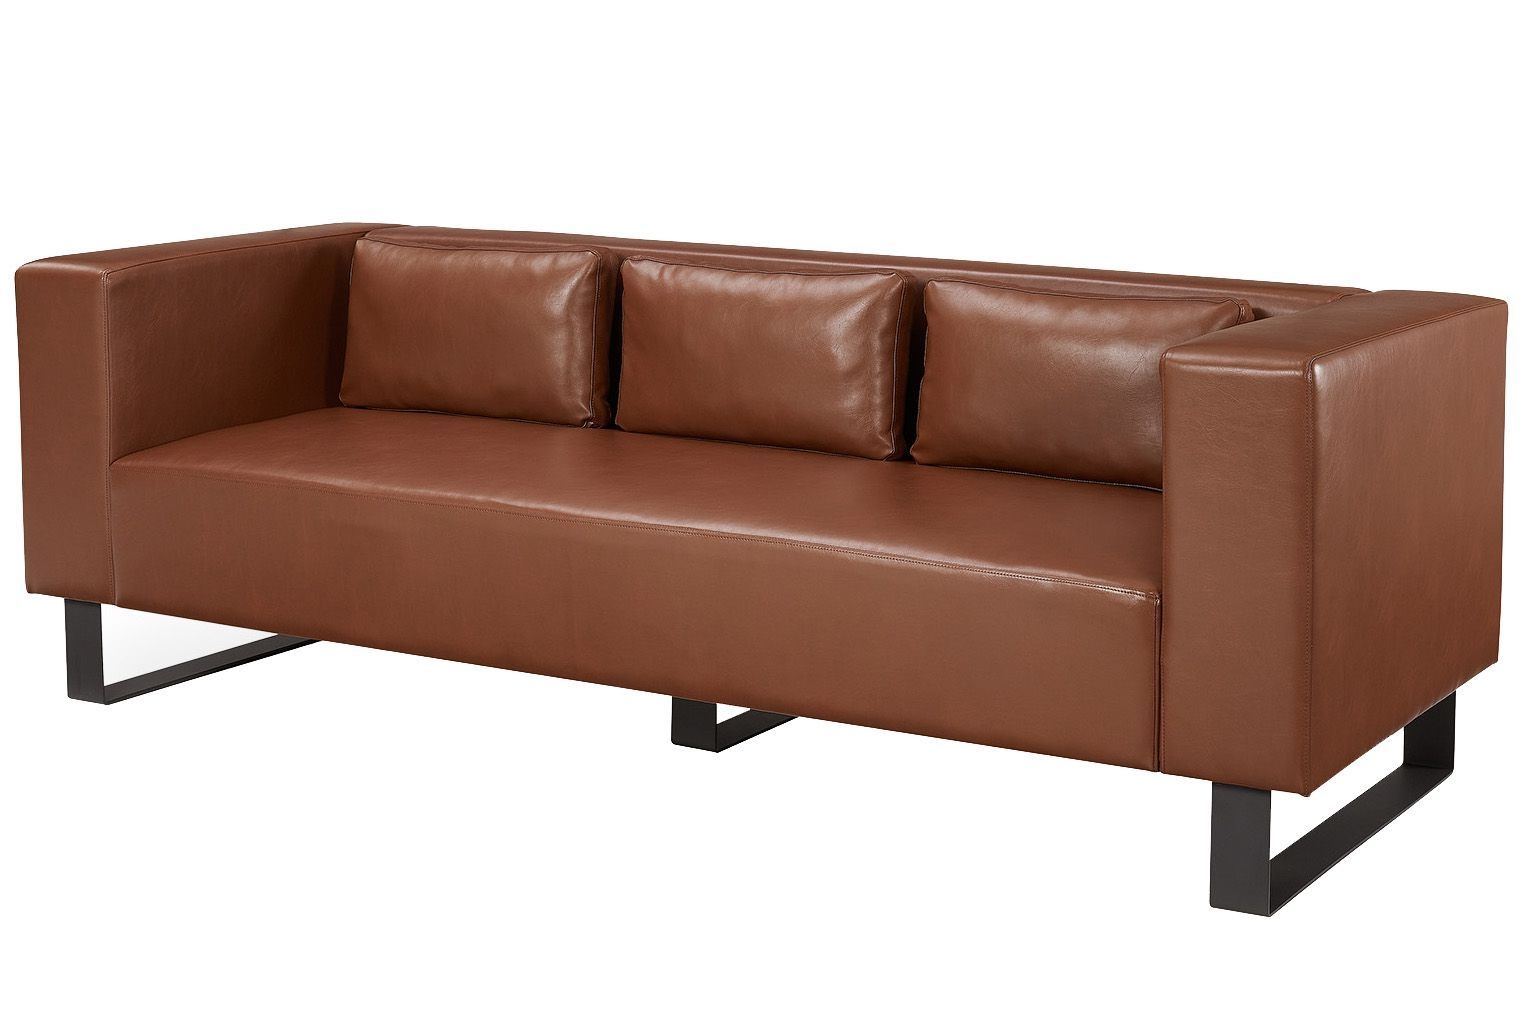 Tremendous Modrn Refined Industrial Sofa Onthecornerstone Fun Painted Chair Ideas Images Onthecornerstoneorg